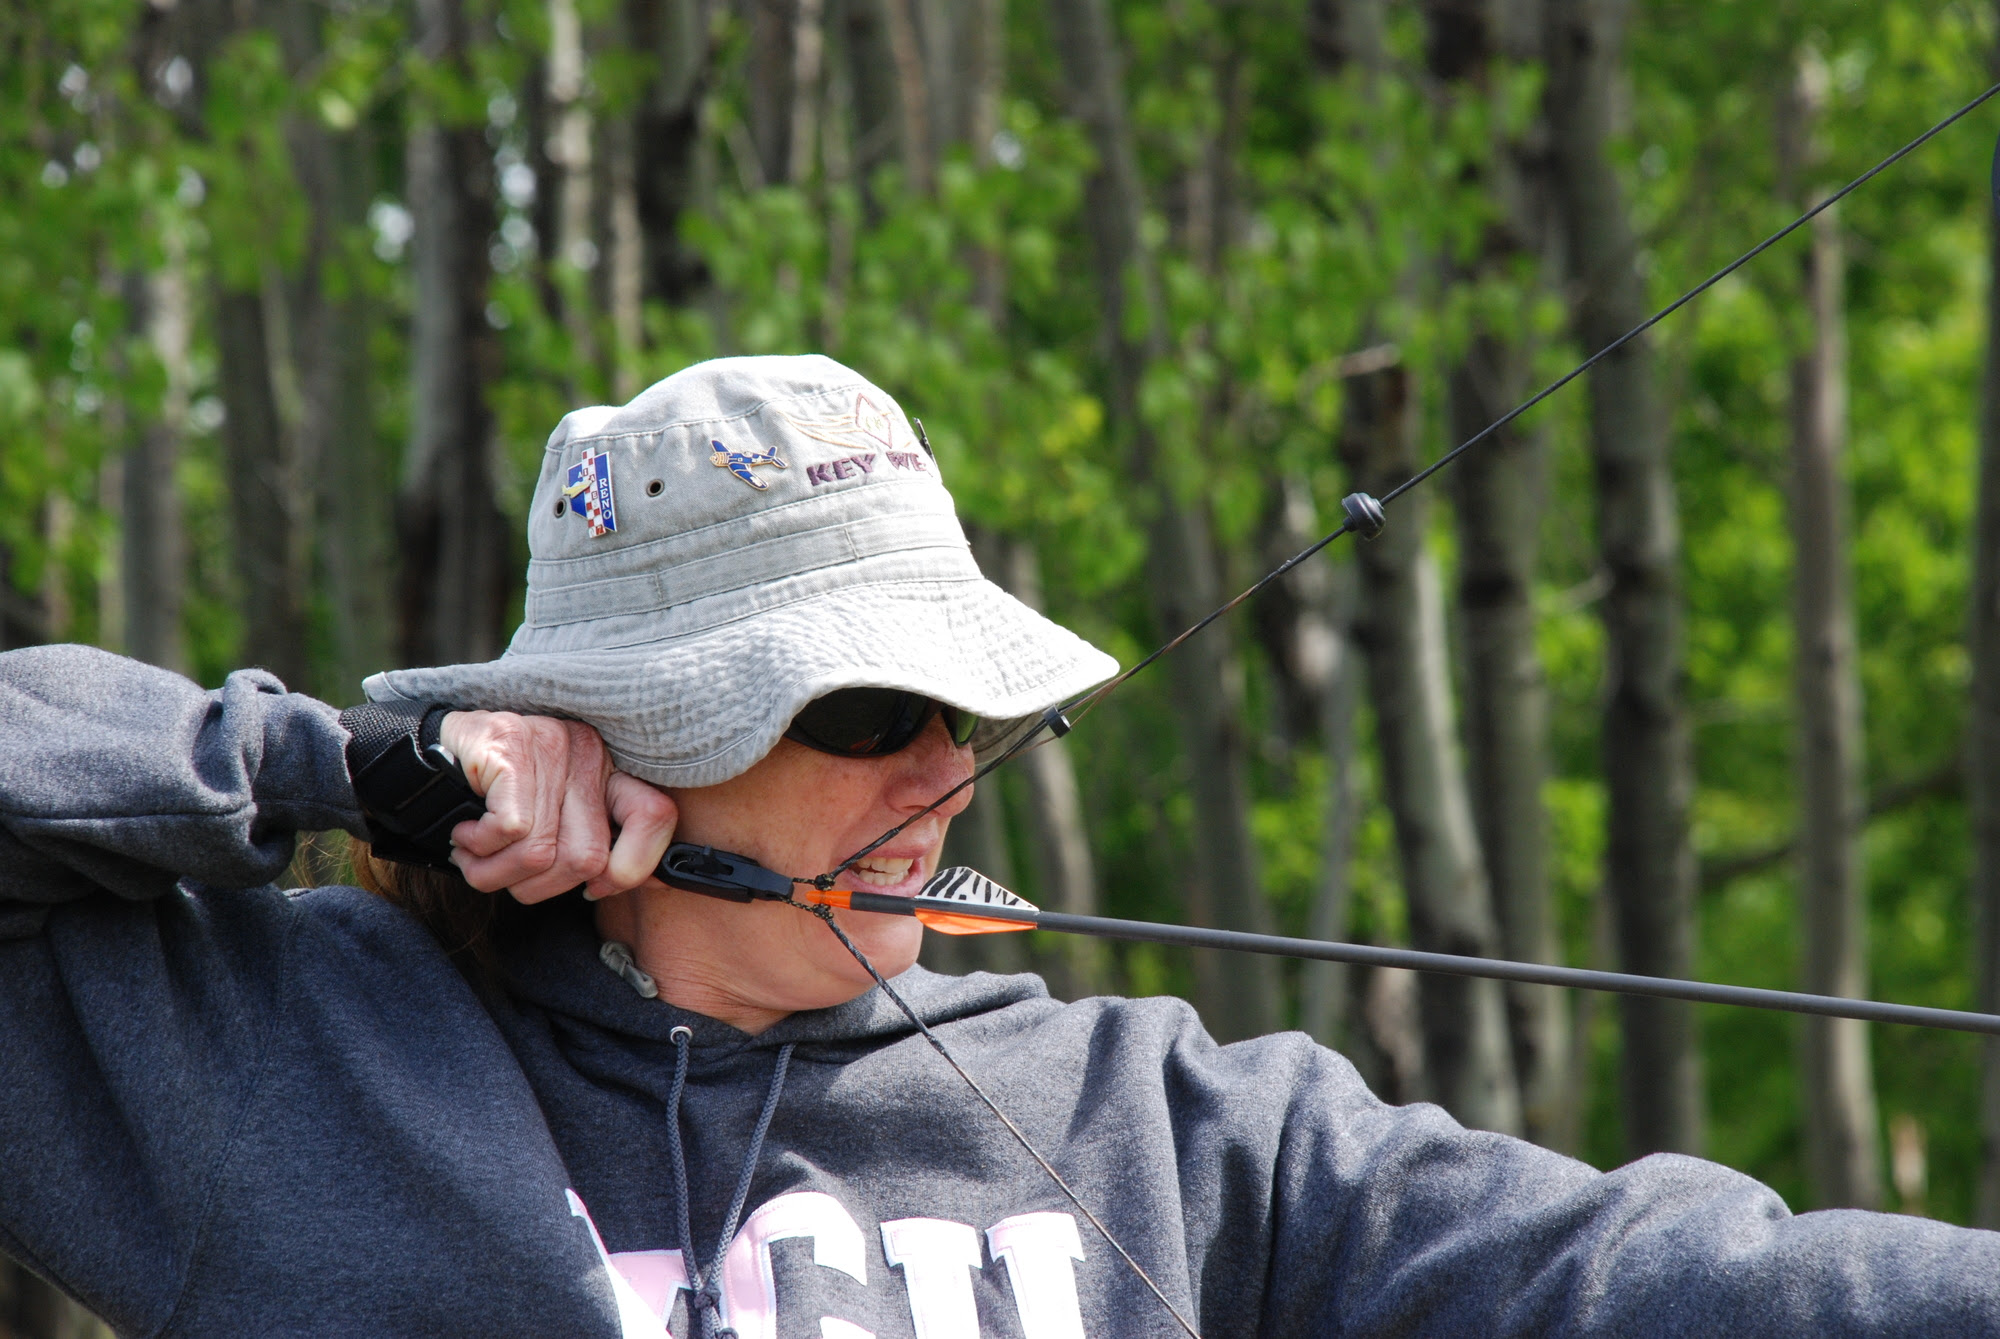 An archer at the Becoming an Outdoors-Woman course in Big Bay, Michigan.